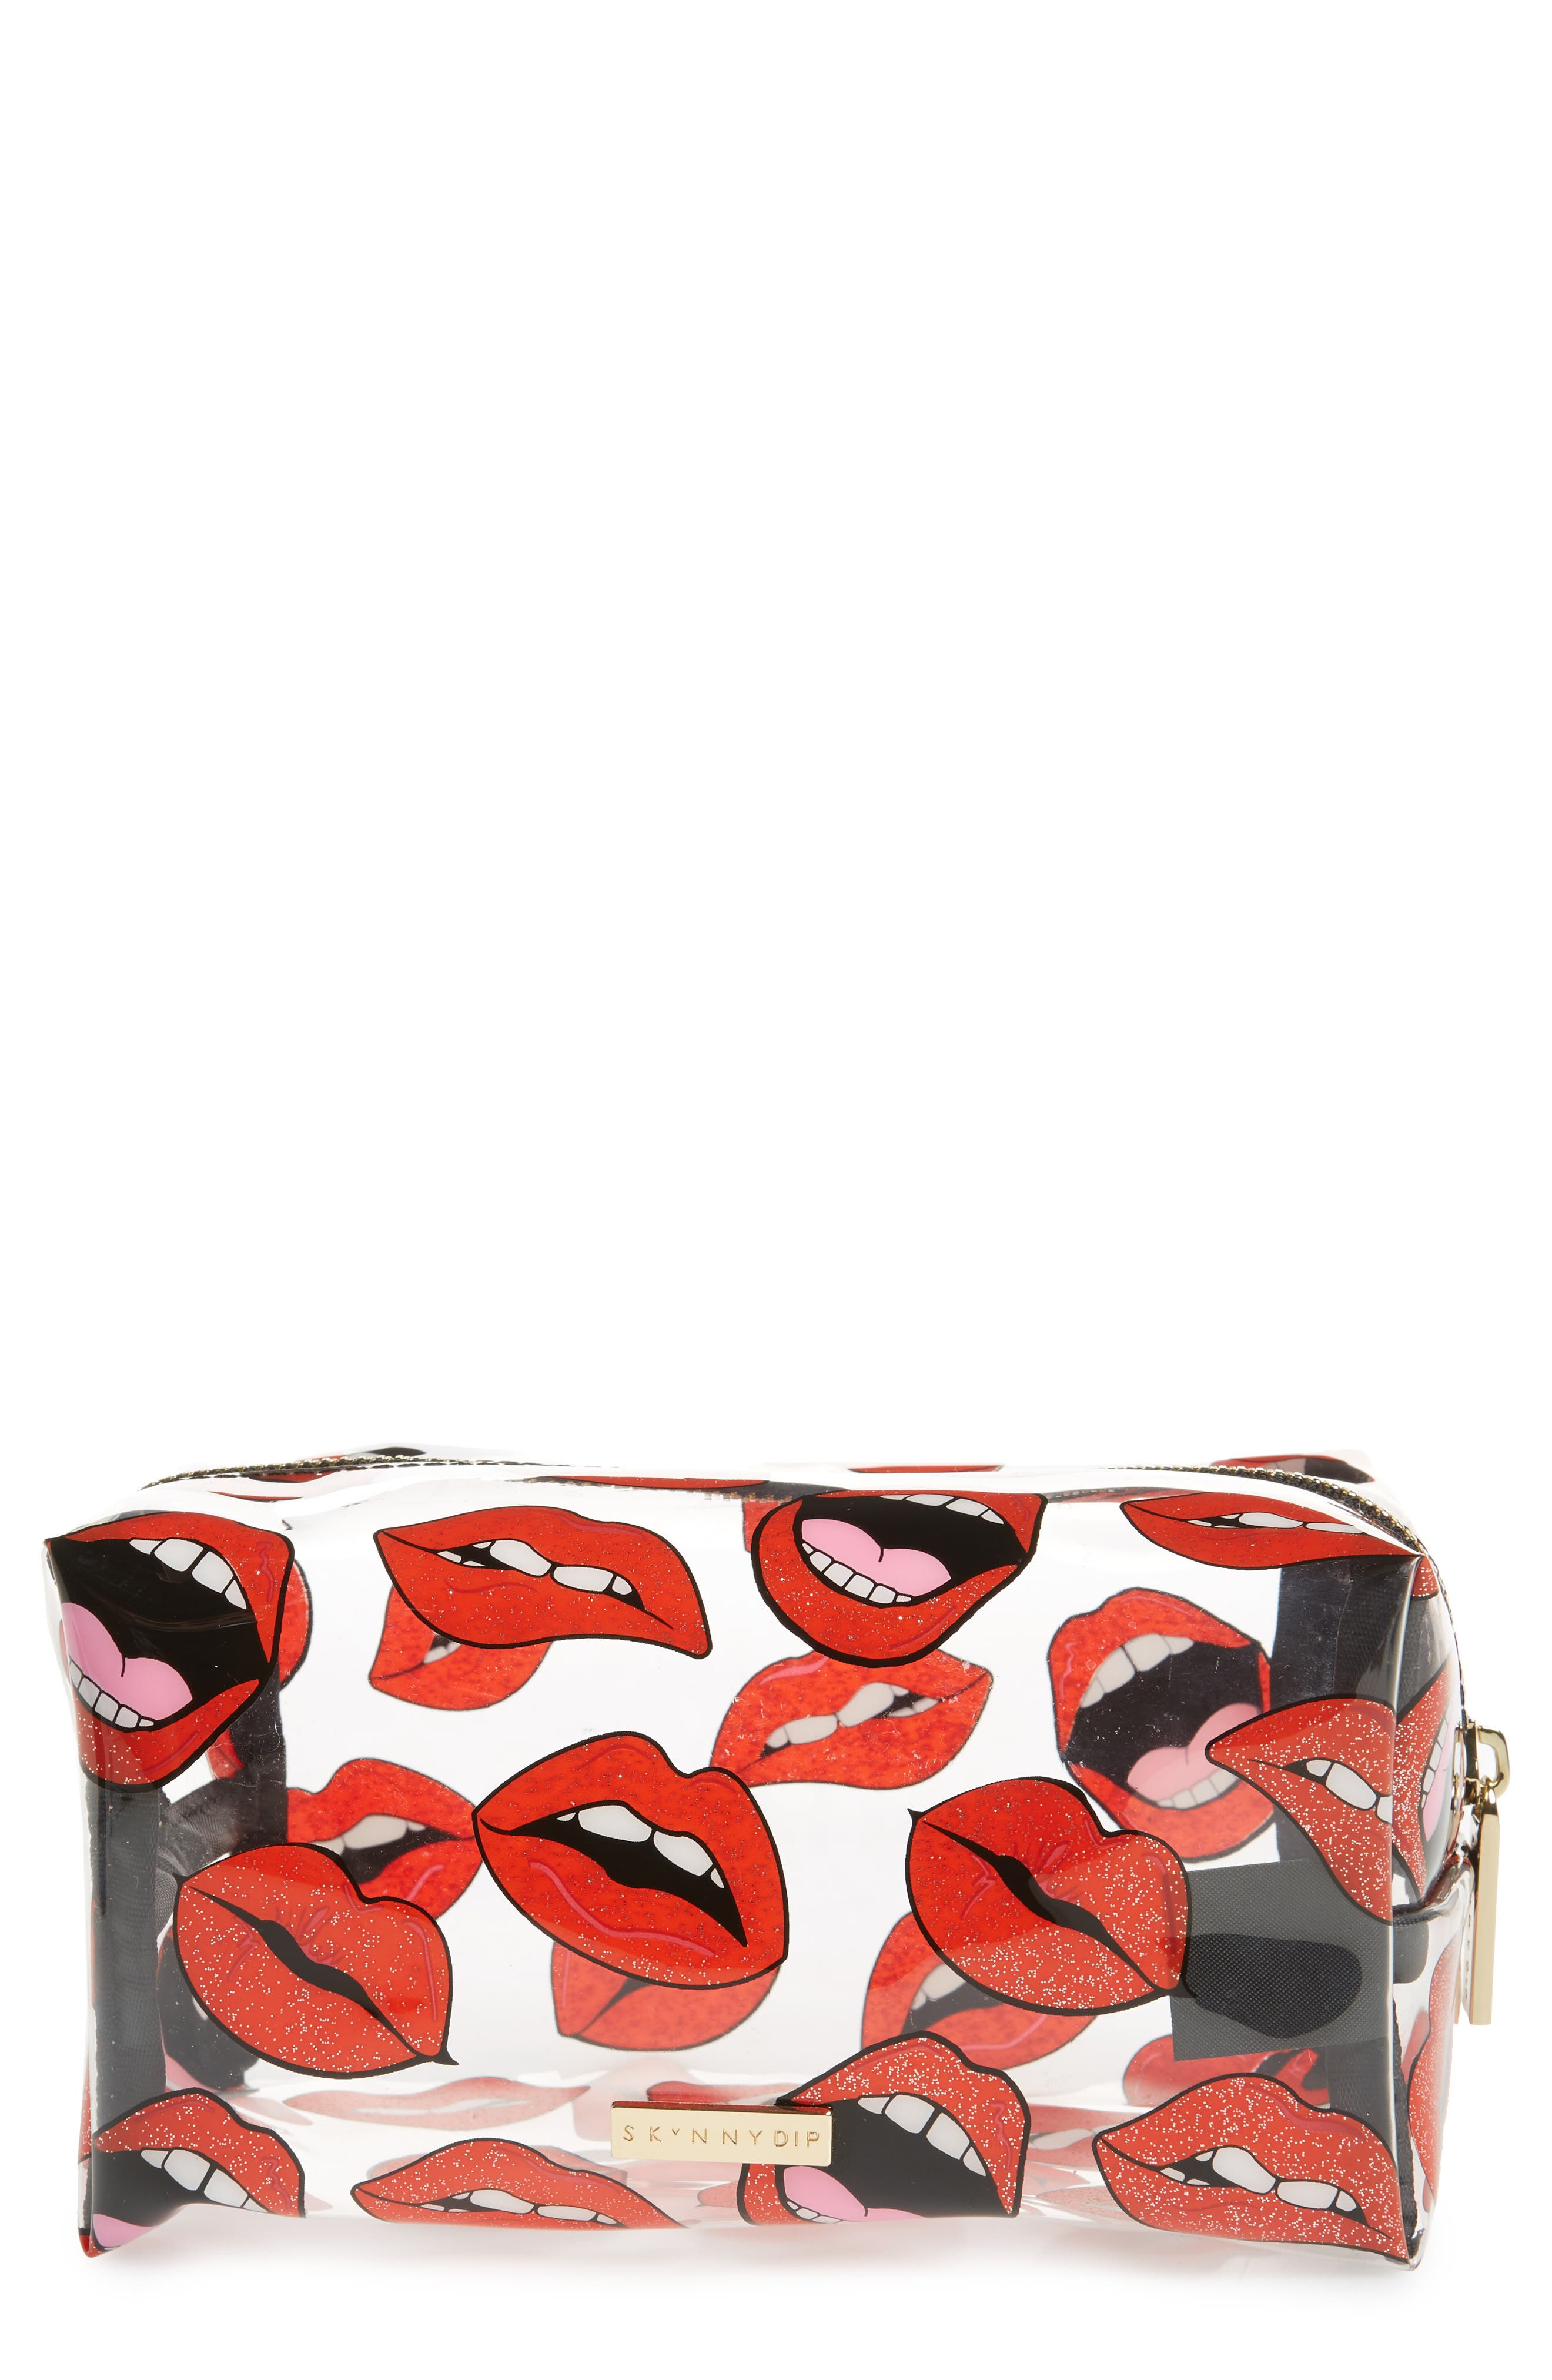 Skinny Dip Lips & Glitter Case,                             Main thumbnail 1, color,                             No Color